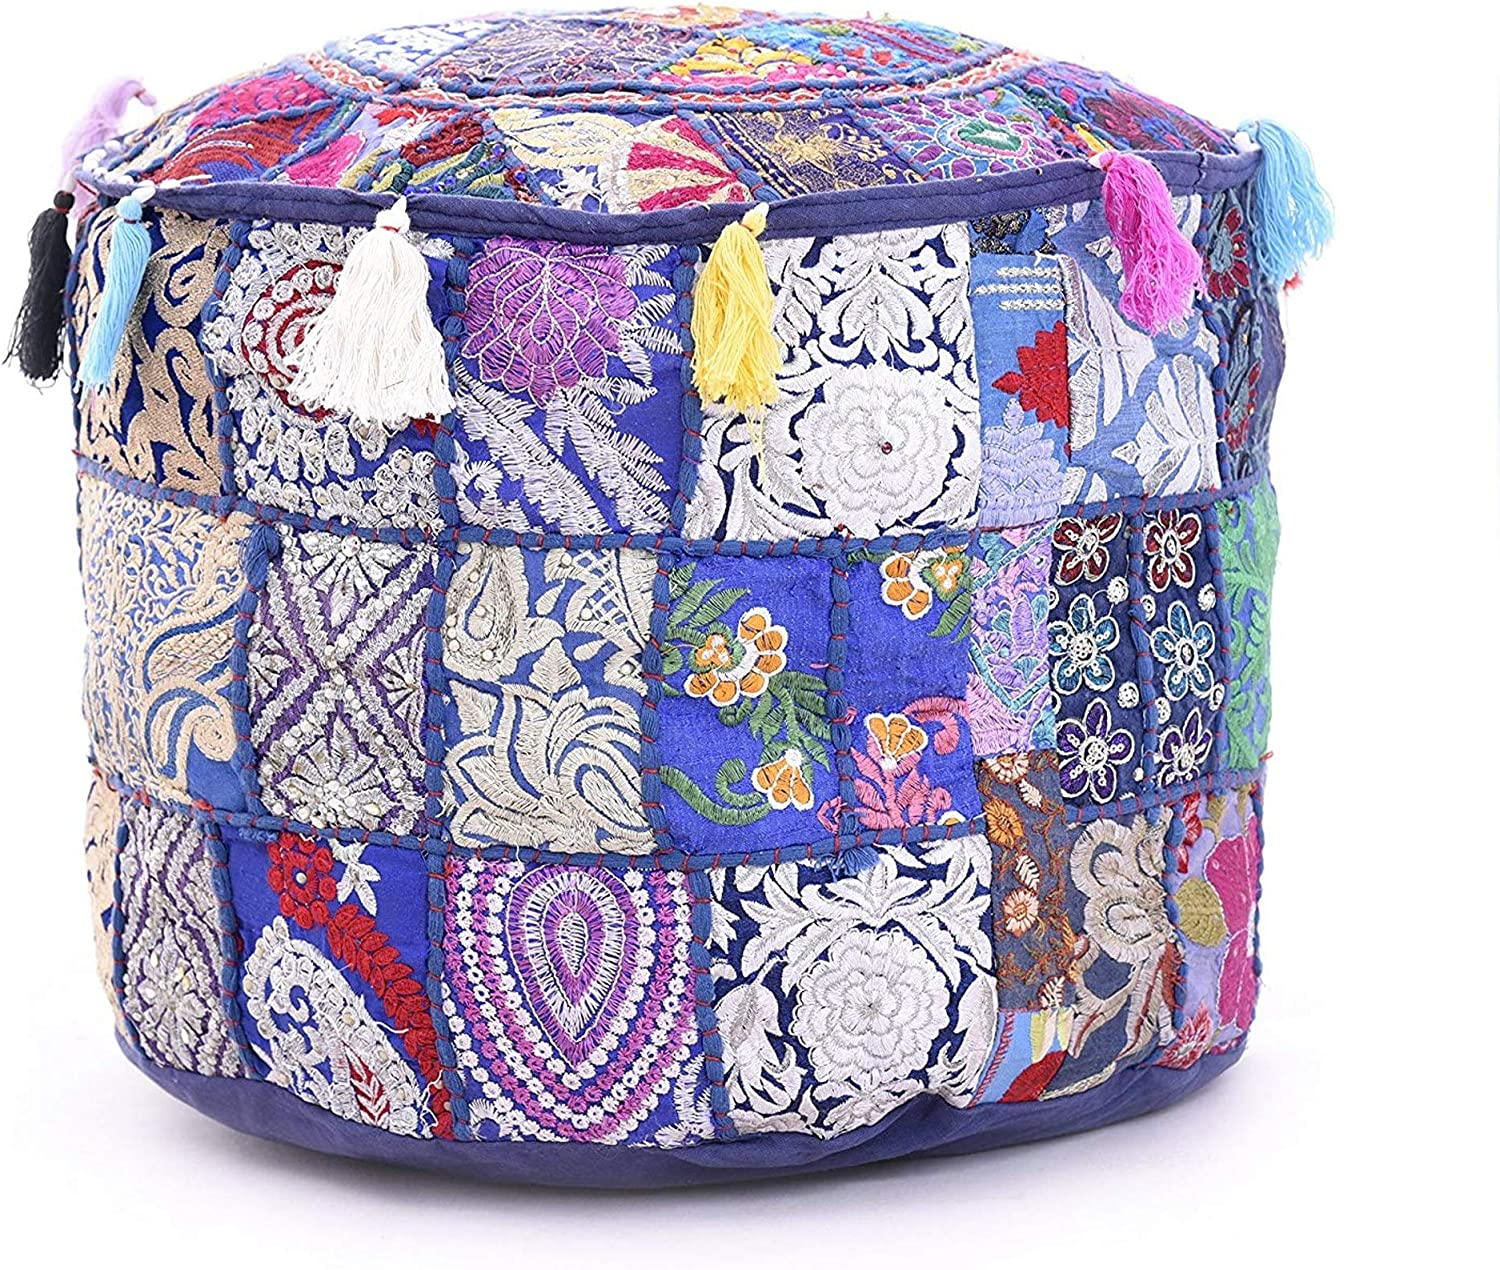 The Art Box Indian Vintage Ottoman Pouf Cover Patchwork Ottoman Living Room Patchwork Foot Stool Cover Decorative Handmade Home Chair Cover Blue Ottoman 14x22 Inch Poufs Helioservice Home Kitchen